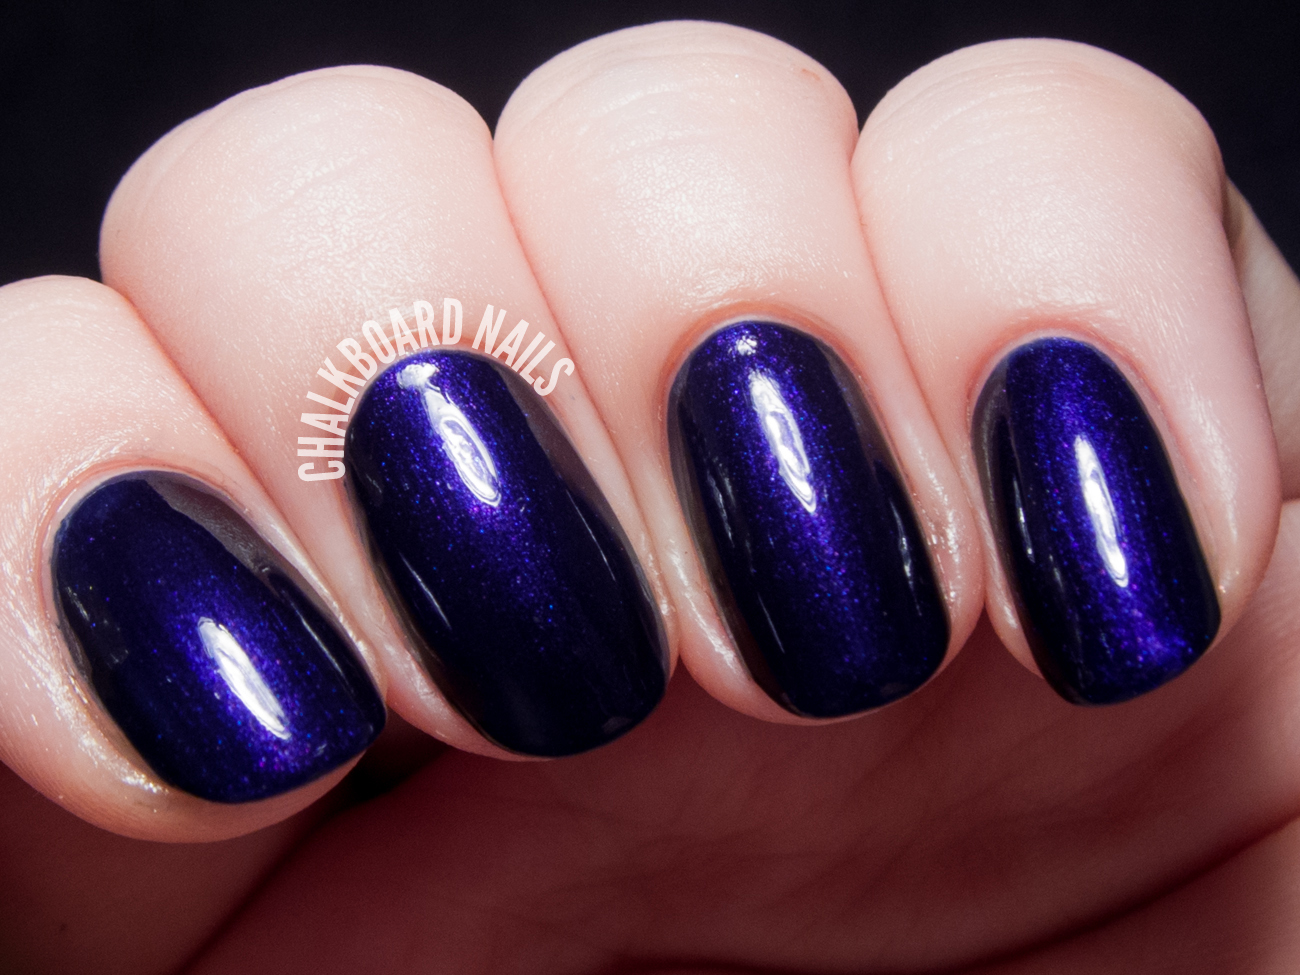 Dermelect Heirloom via @chalkboardnails